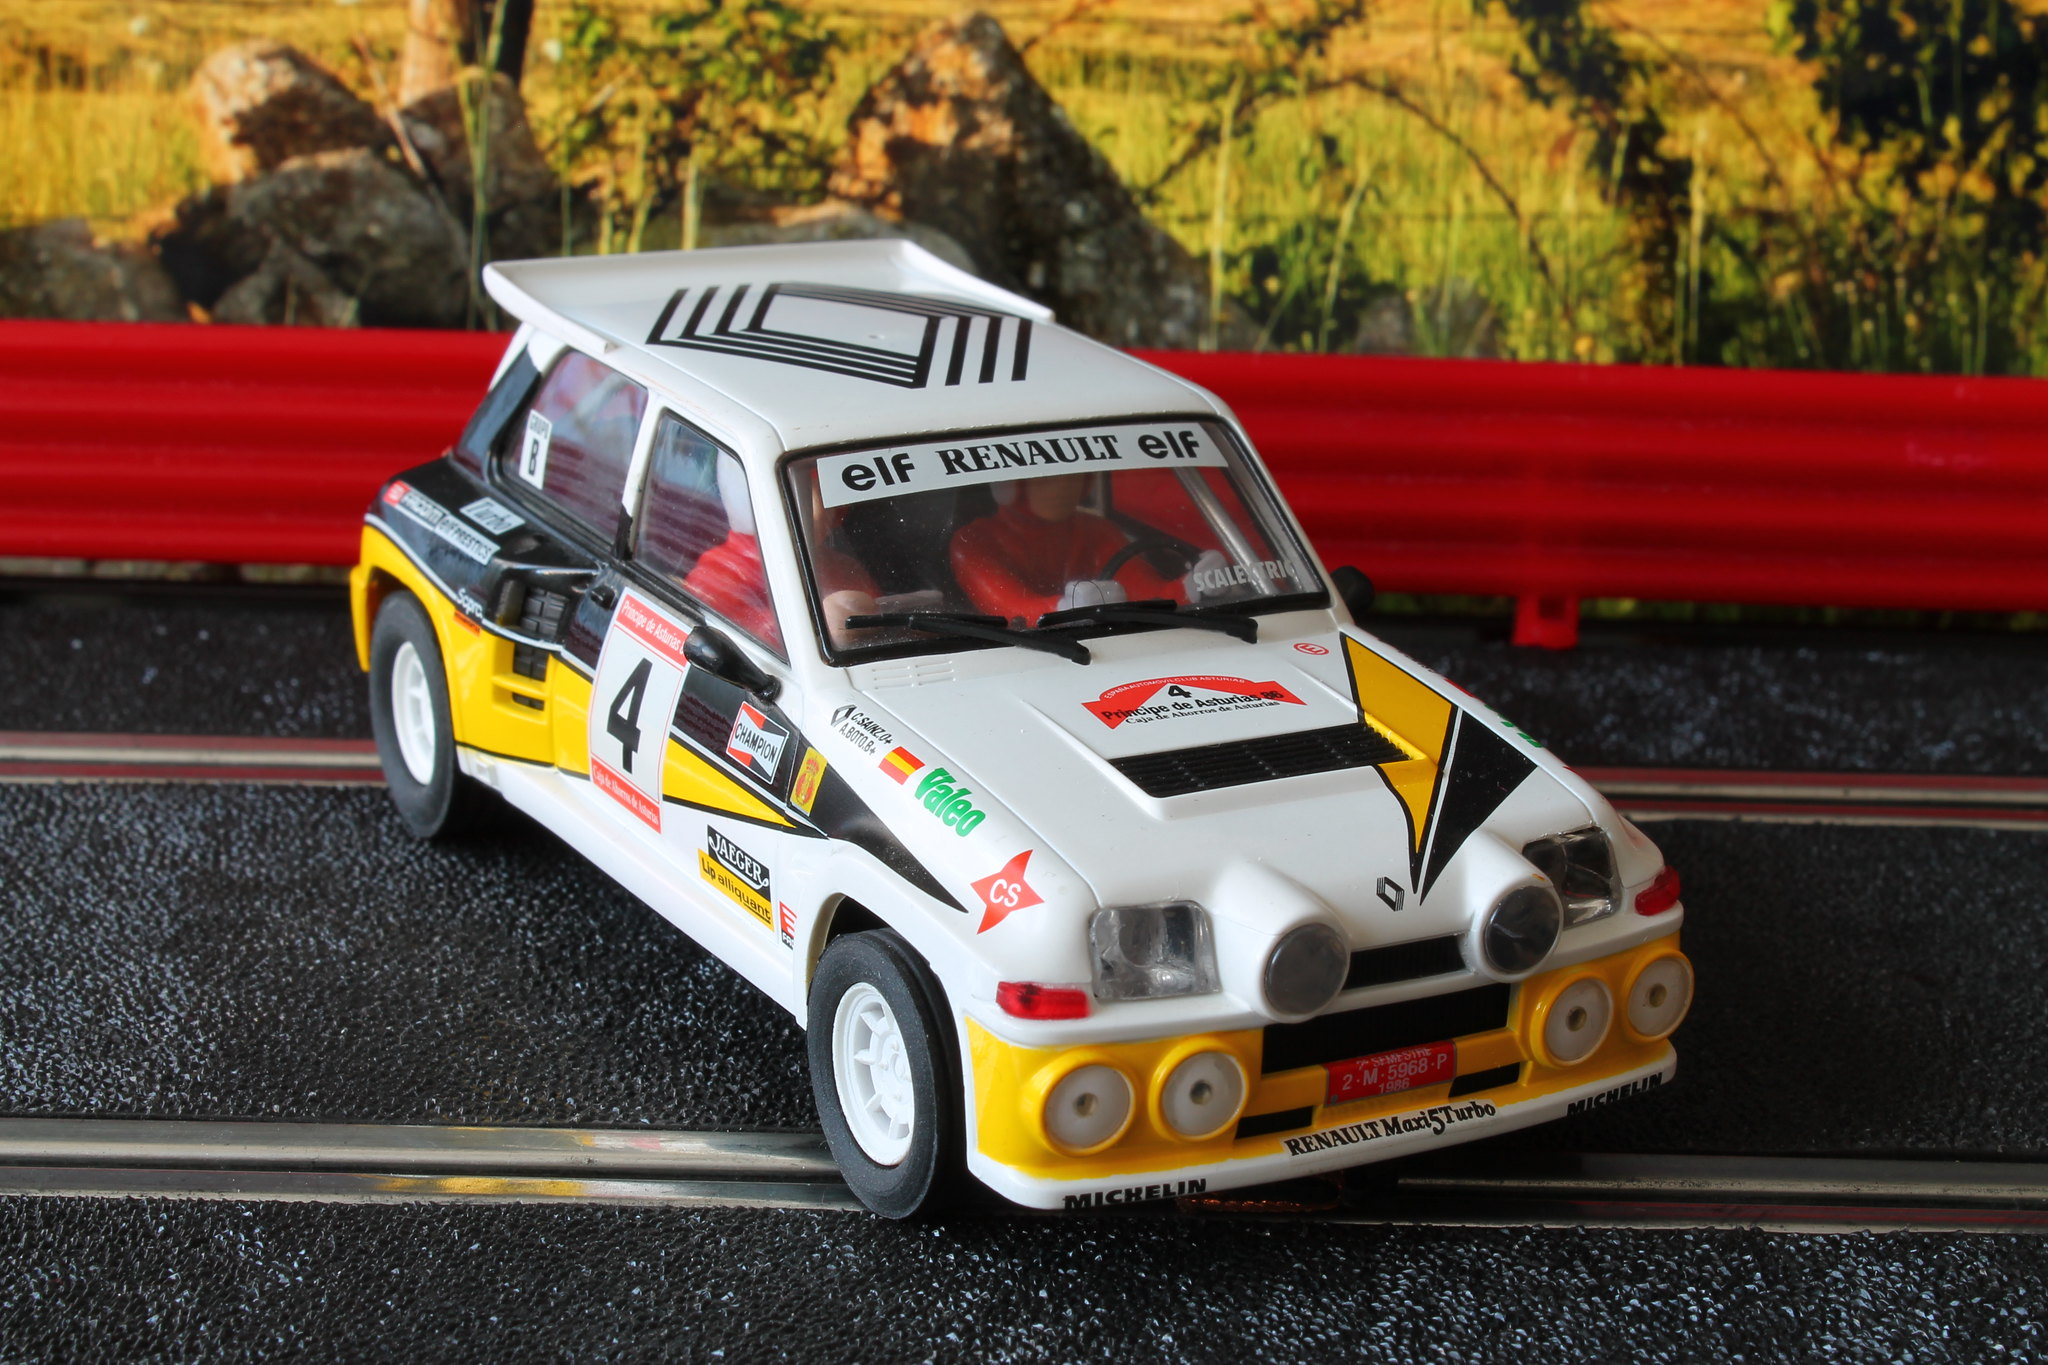 renault 5 turbo maxi turbo carlos sainz rallye pr ncipe de asturias 1986 ukloma slot cars. Black Bedroom Furniture Sets. Home Design Ideas